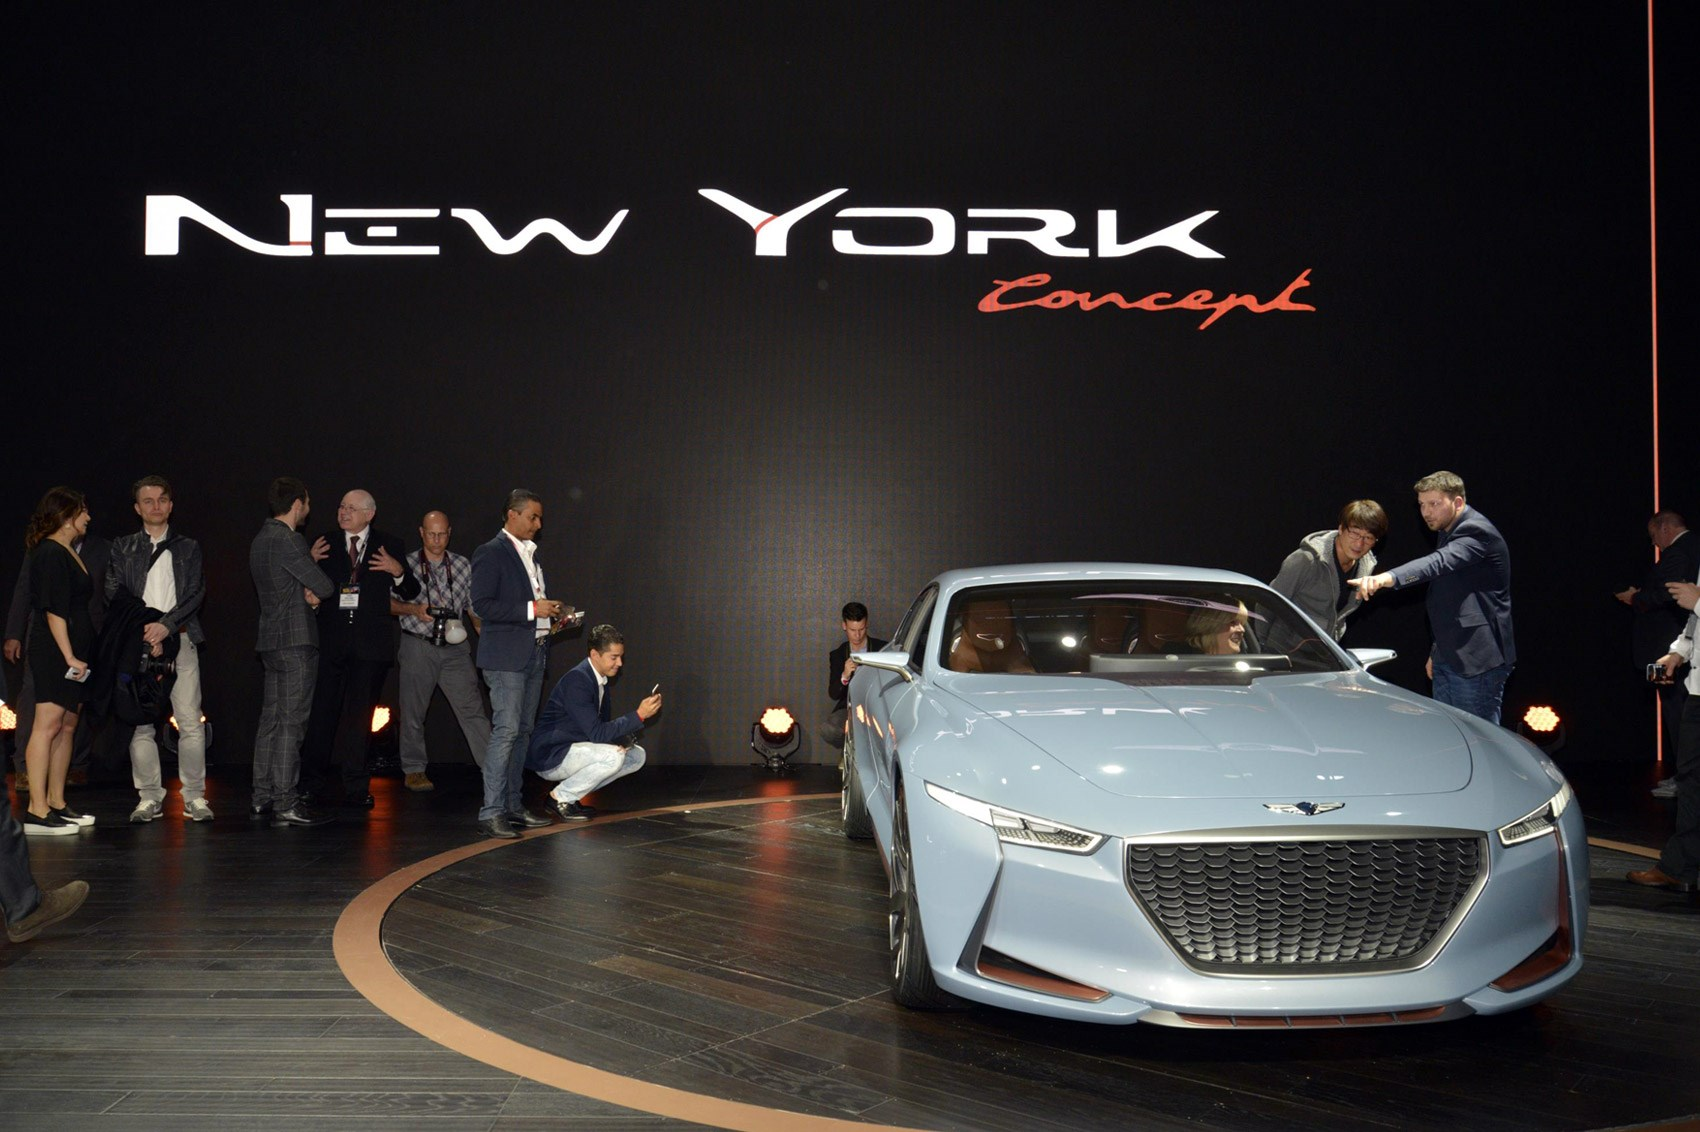 Genesis Ny Concept Future Bmw Rival: Genesis 'New York Concept' Previews Upcoming BMW 3-Series